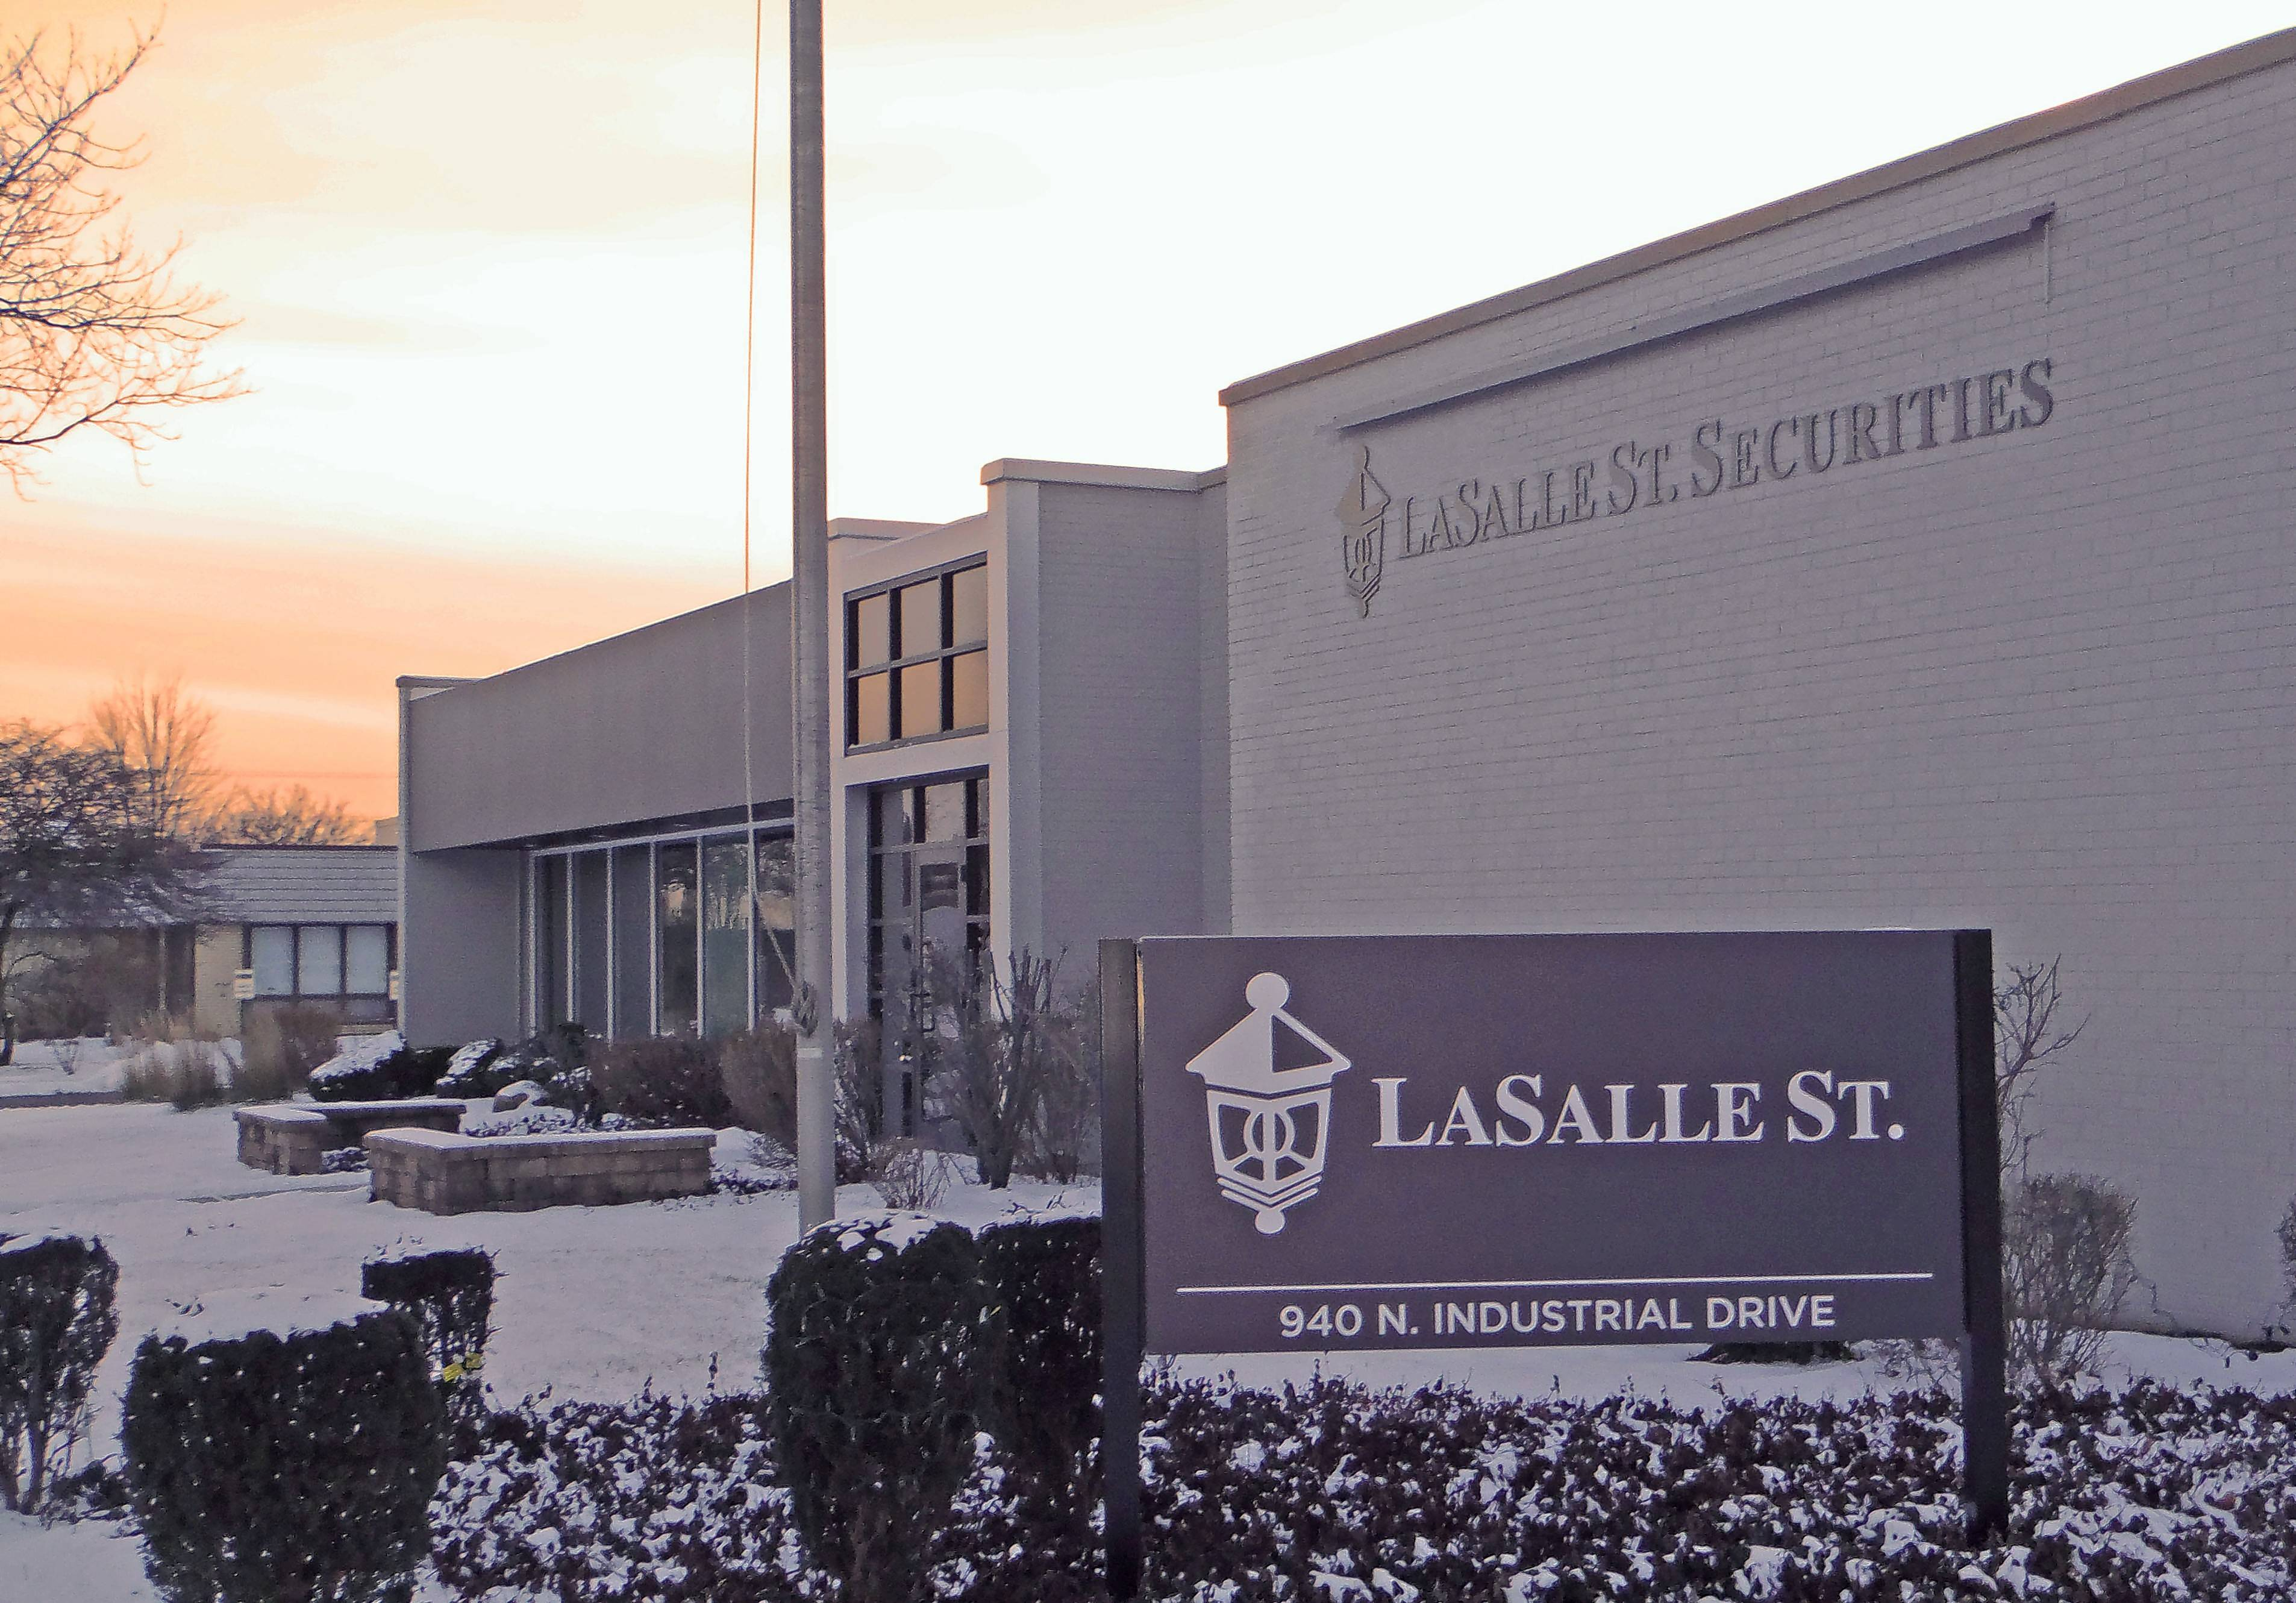 LaSalle St. Securities said it has added Kentucky-based L & N Federal Credit Union to its growing network of financial adviser affiliations.